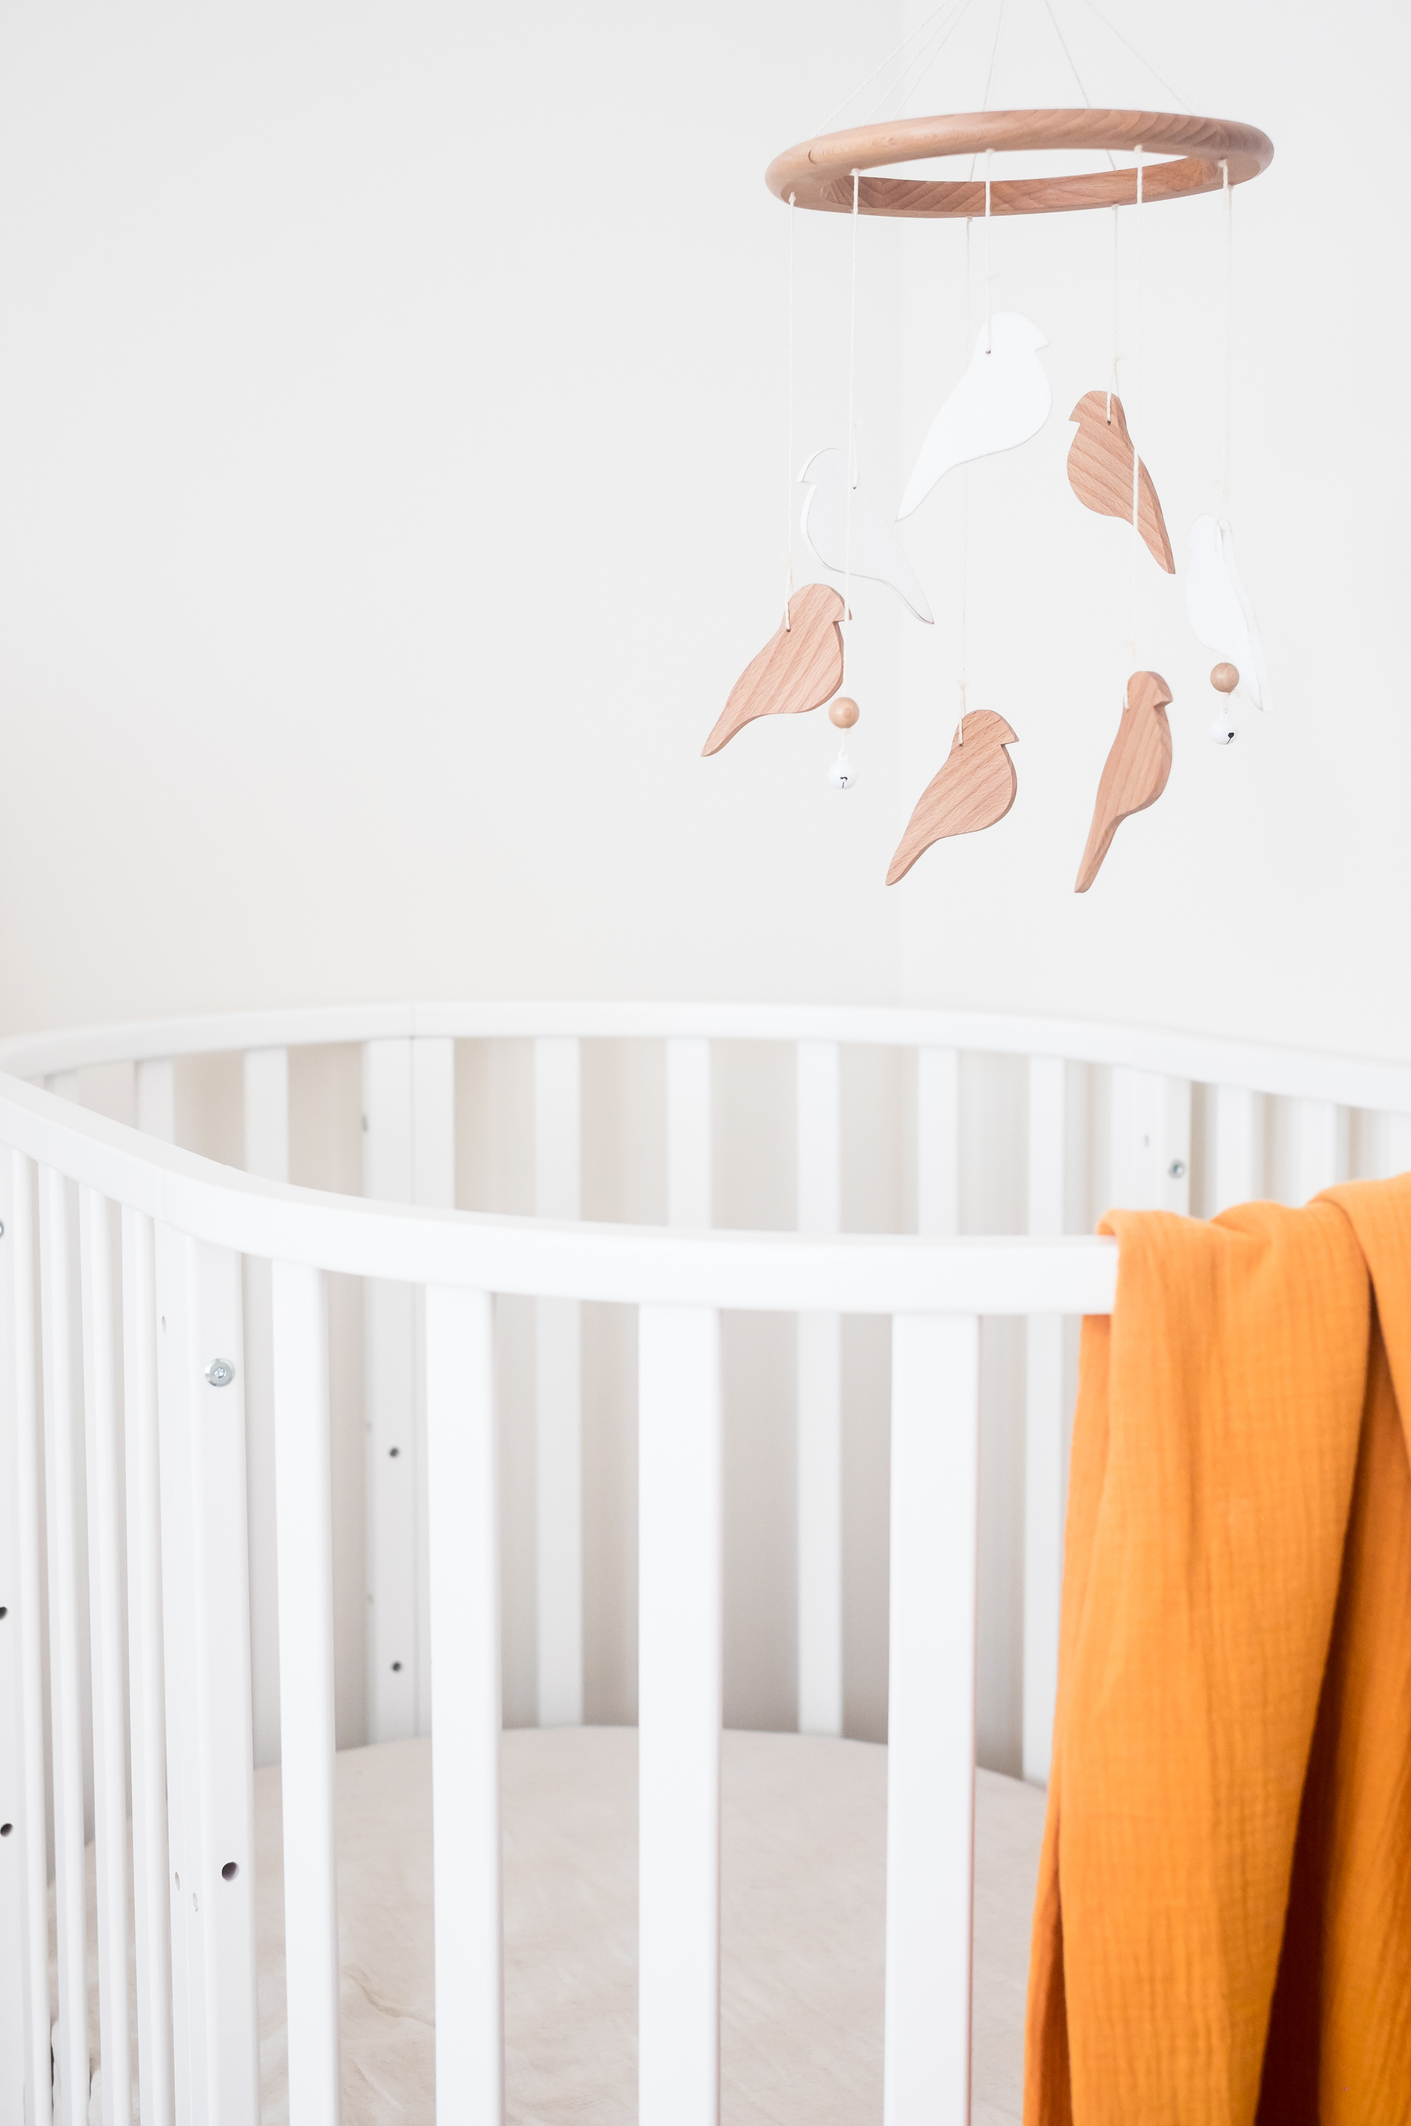 Close up view of baby room with a white baby bed and a baby mobile hanging over the bed, selective focus. Nursery interior.